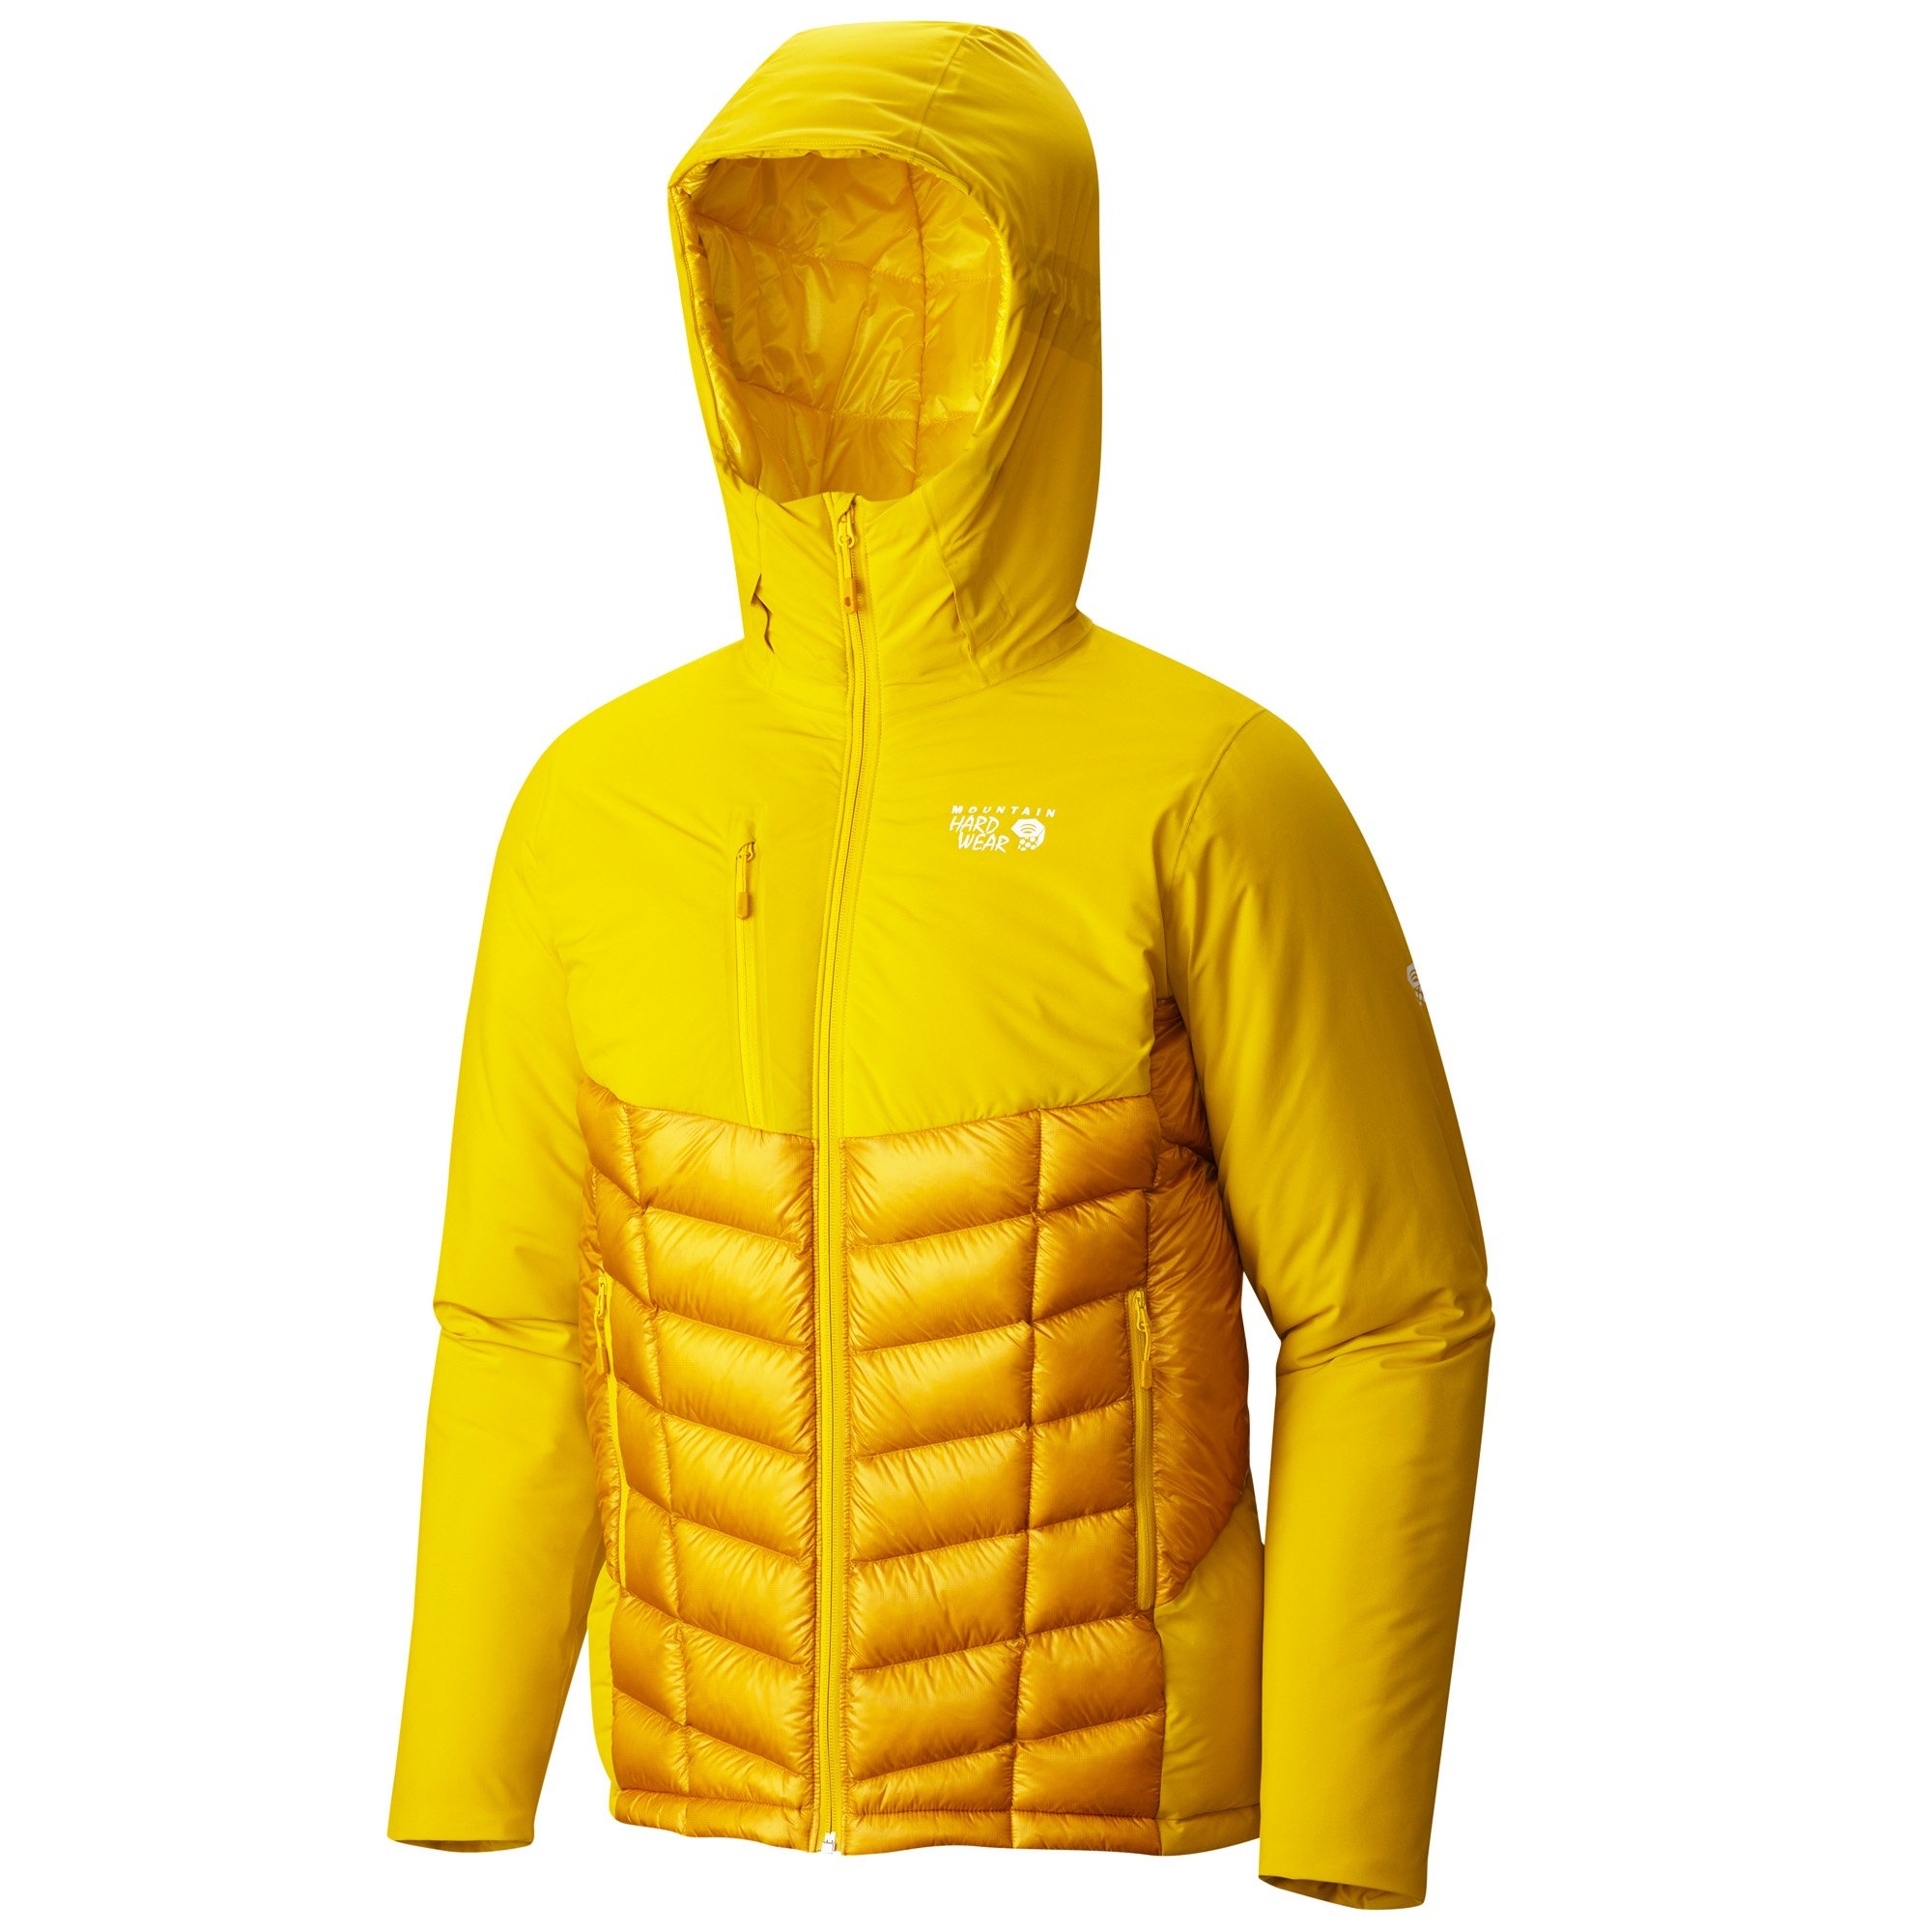 Mountain Hardwear Supercharger Insulated Jacket - Men's Electron Yellow X-Large by Mountain Hardwear (Image #1)